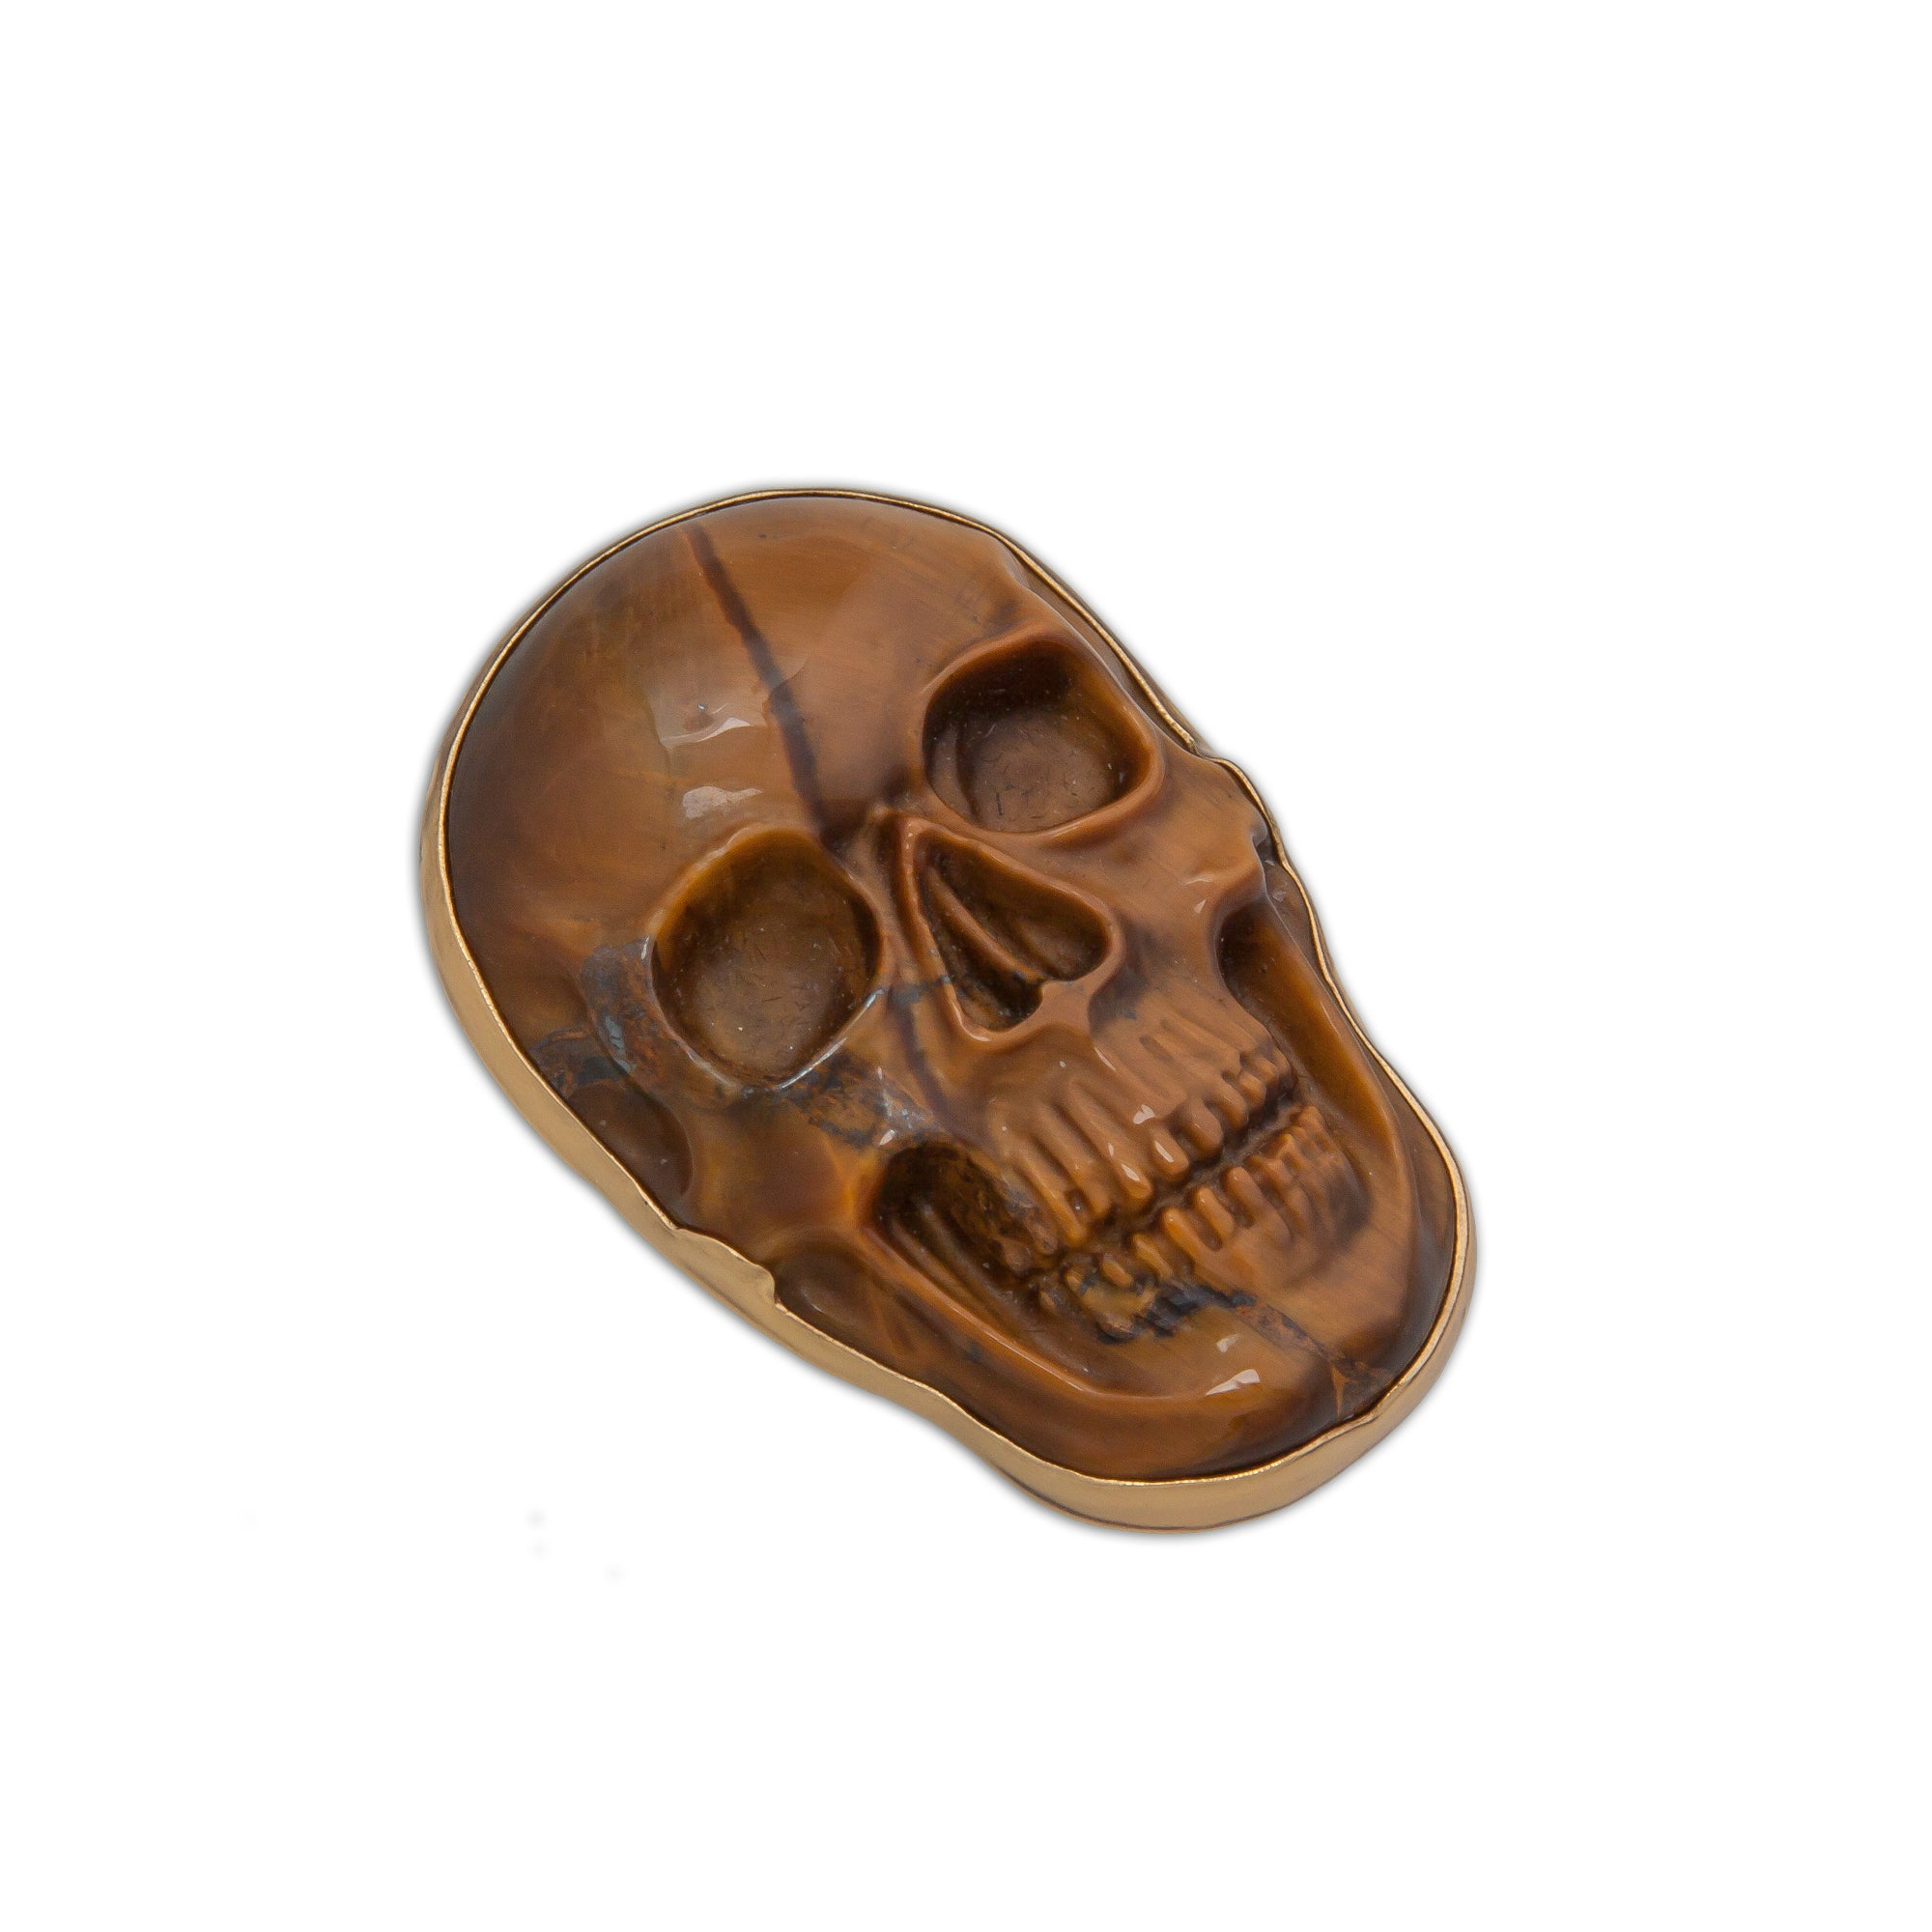 Alchemia Large Tiger Eye Skull Adjustable Ring | Charles Albert Jewelry